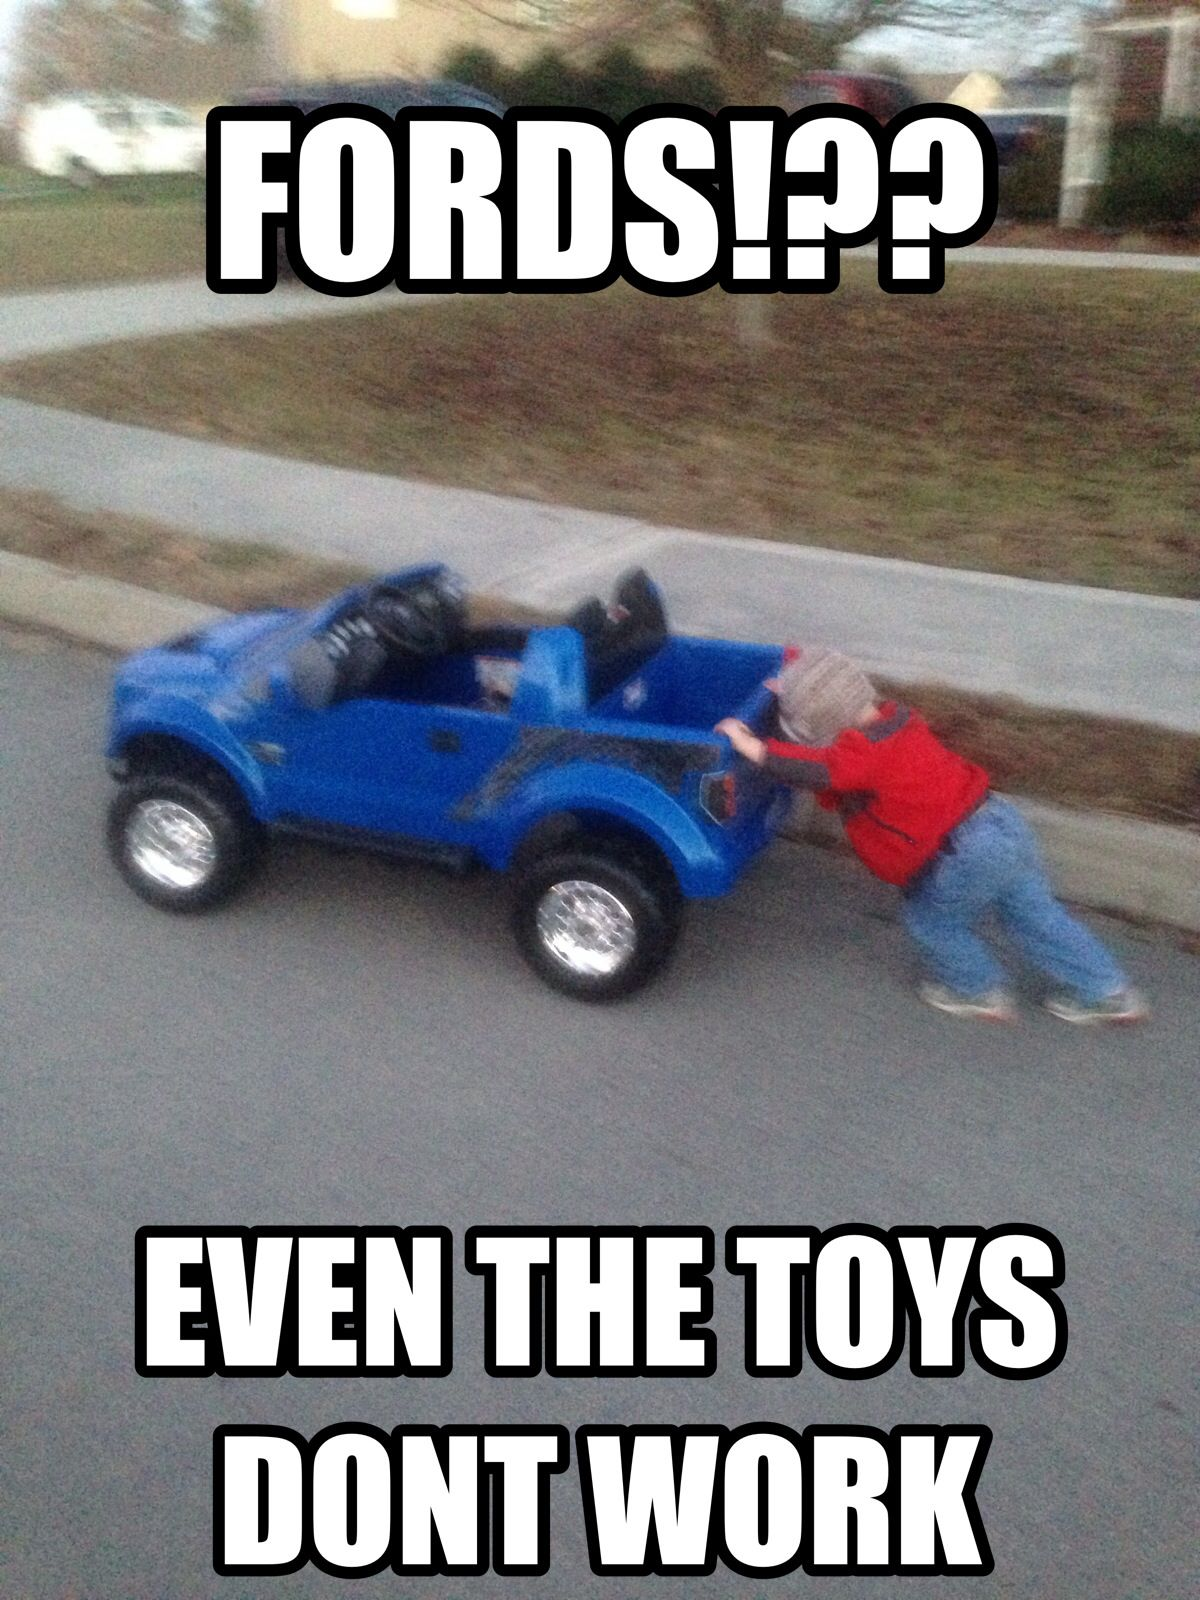 Pin By Chevy Edington On Haha Ford Humor Ford Jokes Chevy Jokes